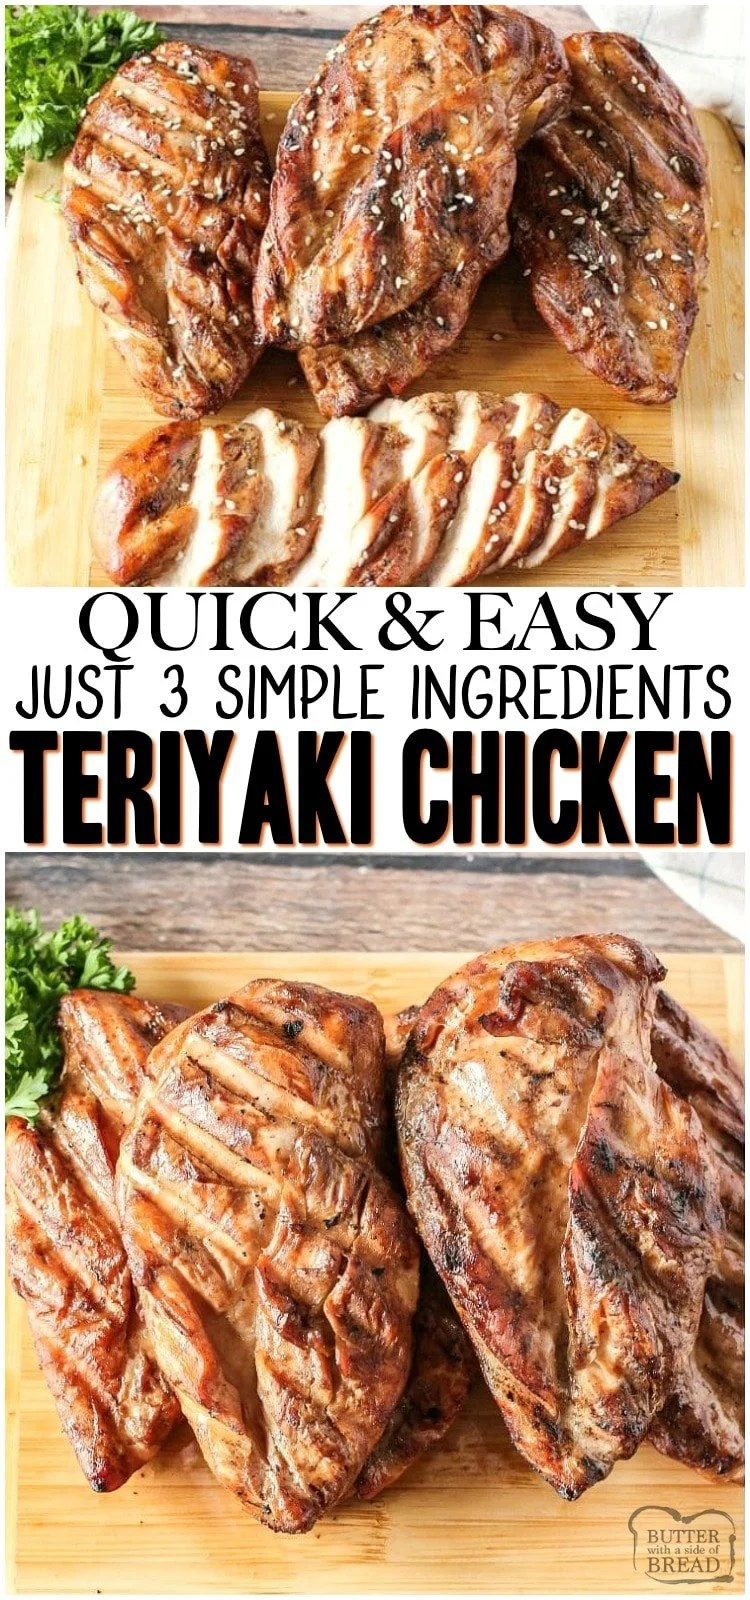 Easy Grilled Teriyaki Chicken recipe has just 3 ingredients and makes juicy, tender and flavorful chicken every time! Chicken Teriyaki recipe perfect for a simple weeknight dinner or grilling with friends and family. #grill #chicken #teriyaki #easychicken #recipe #dinner from BUTTER WITH A SIDE OF BREAD